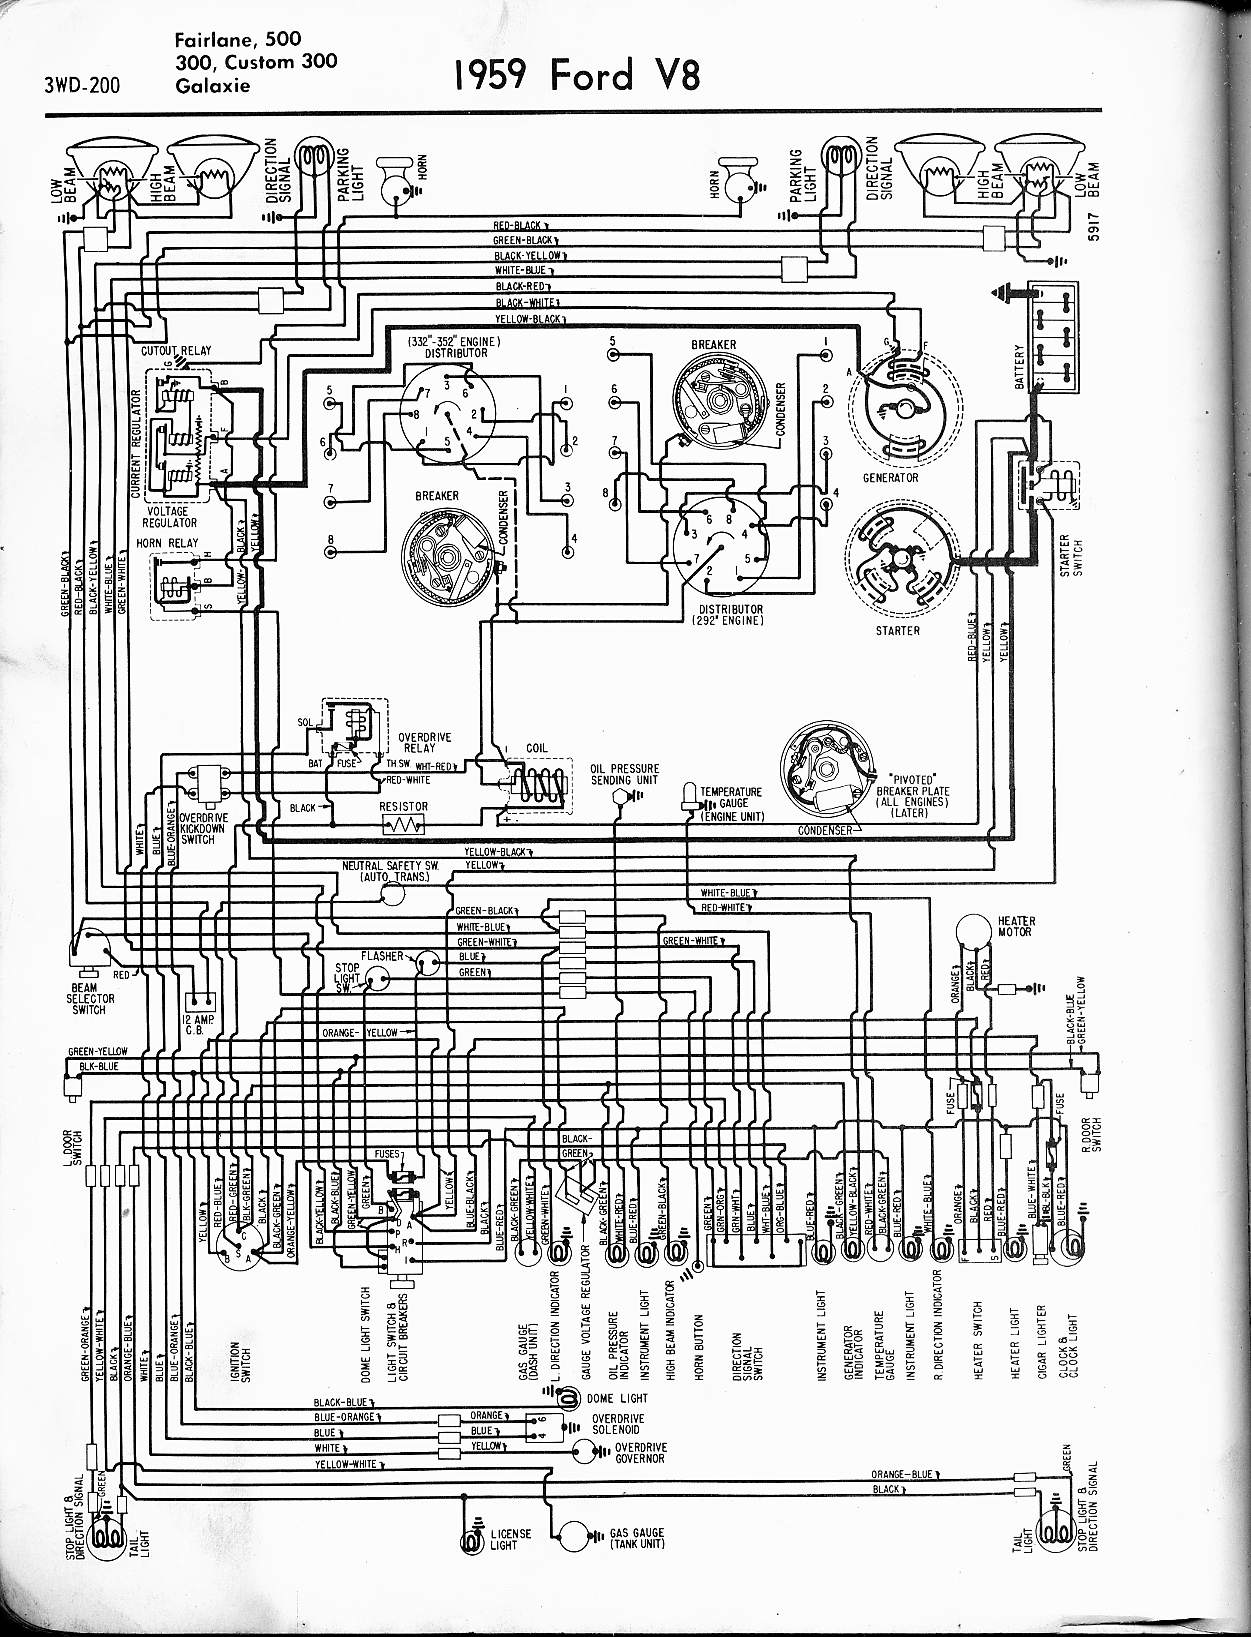 Mwire on 1965 Mustang Power Steering Diagram